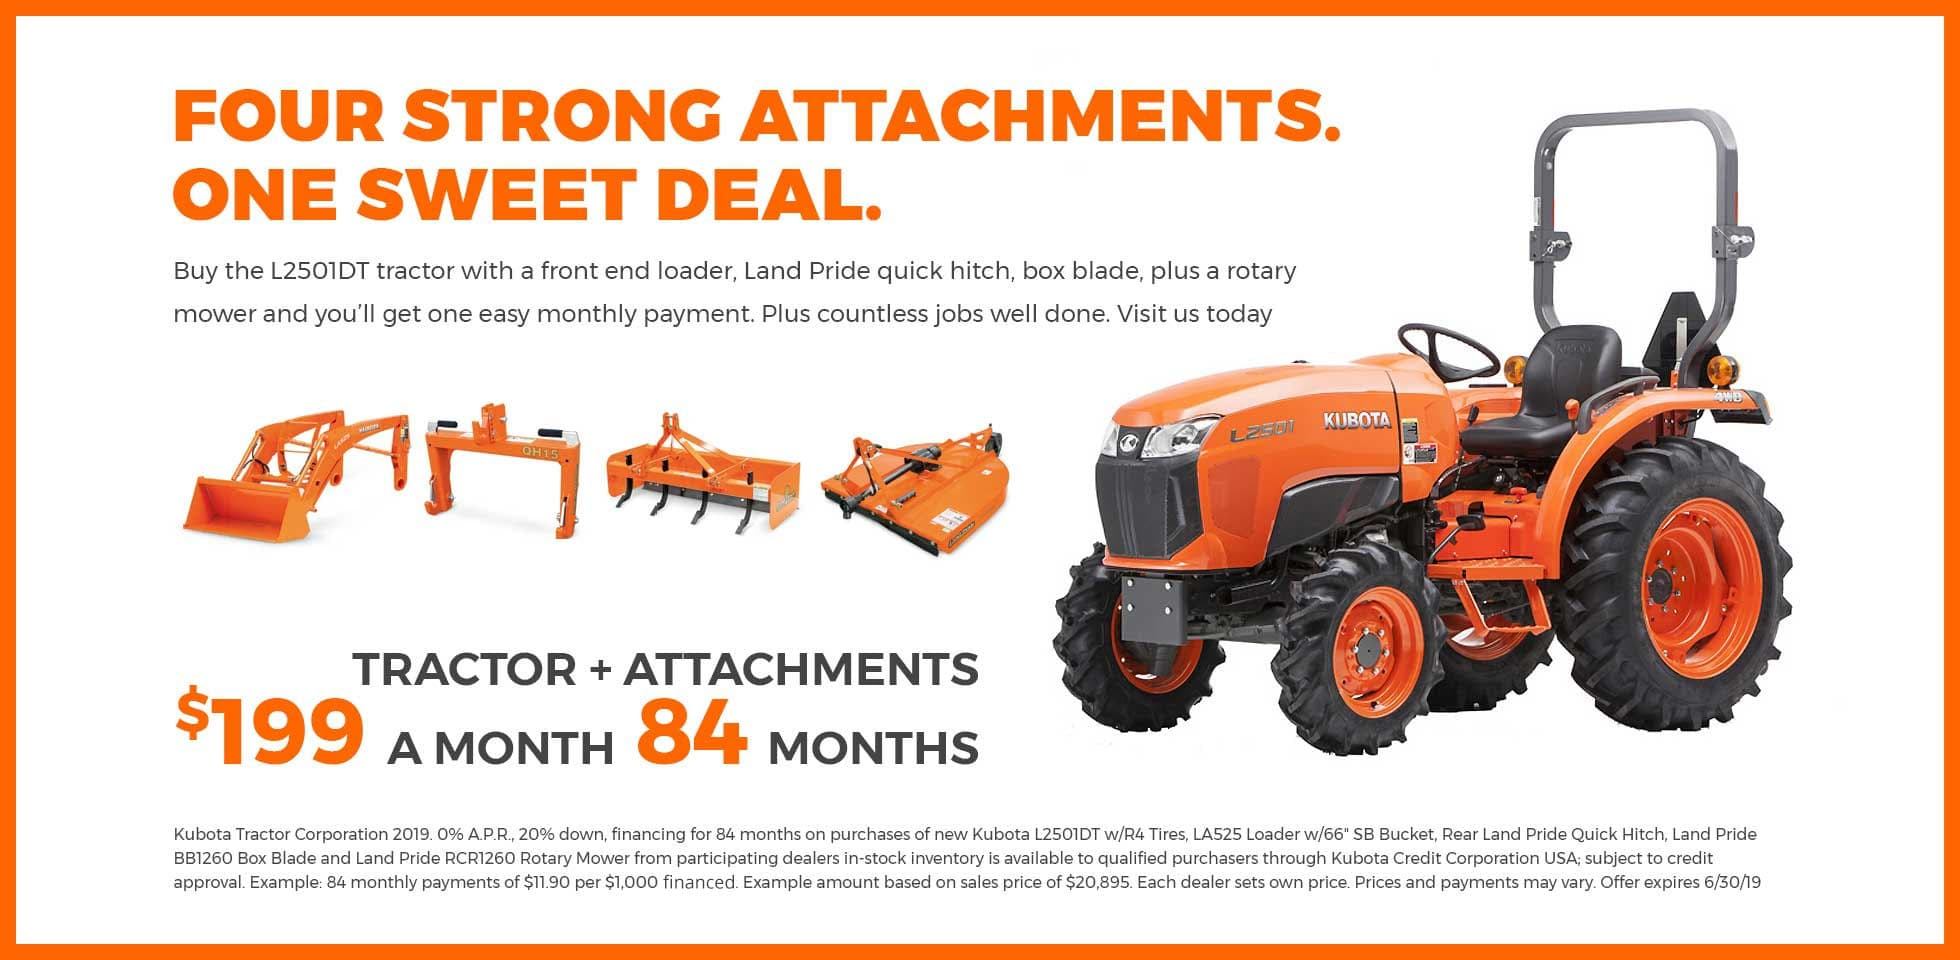 Four Strong Attachments, One sweet deal.